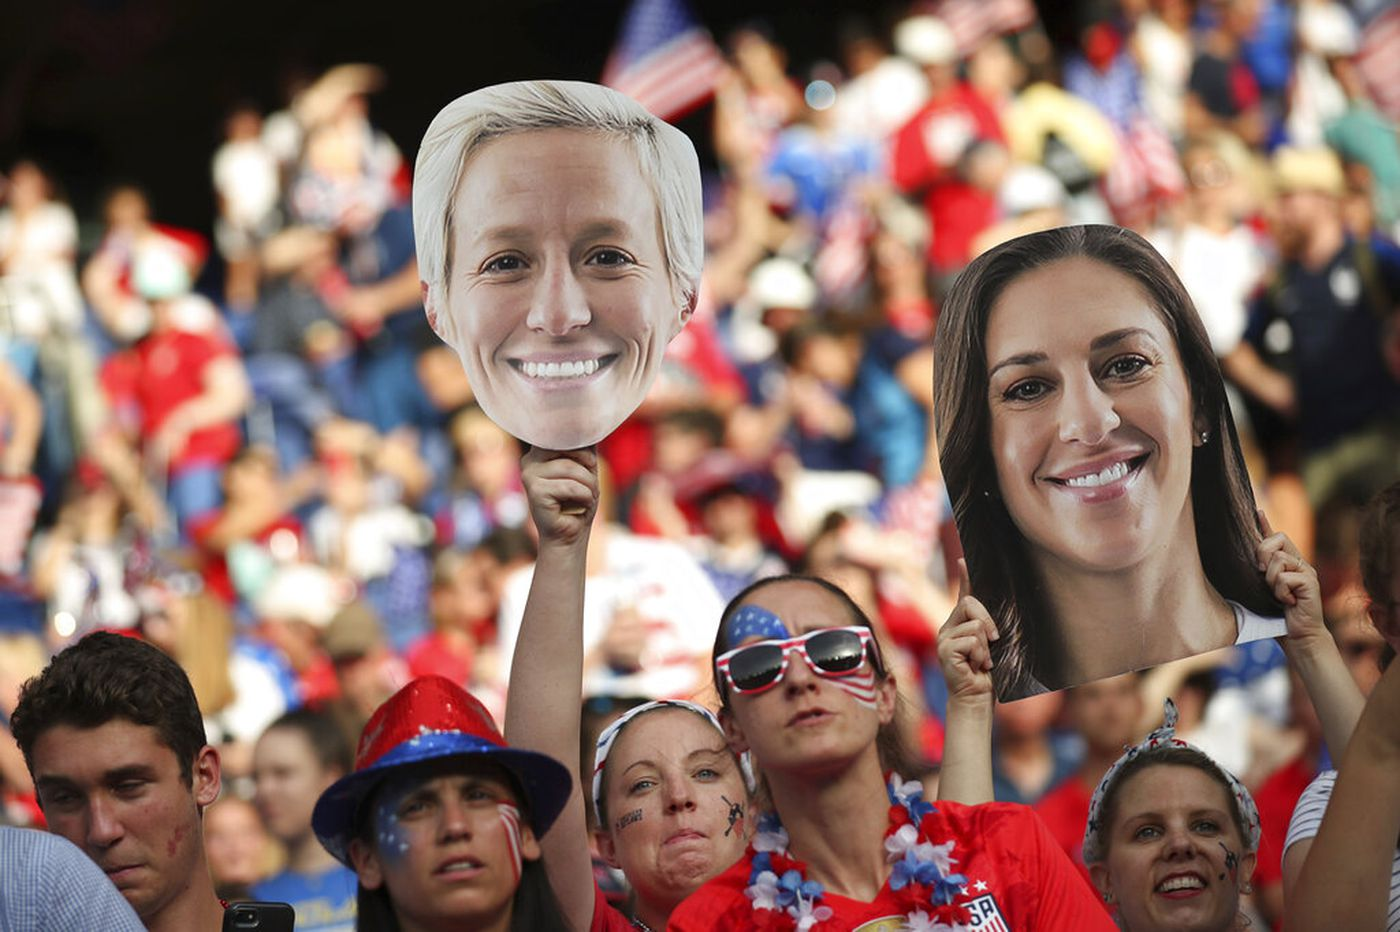 U.S. soccer fans vote with their wallets, backing women's stars at World Cup more than men at Gold Cup